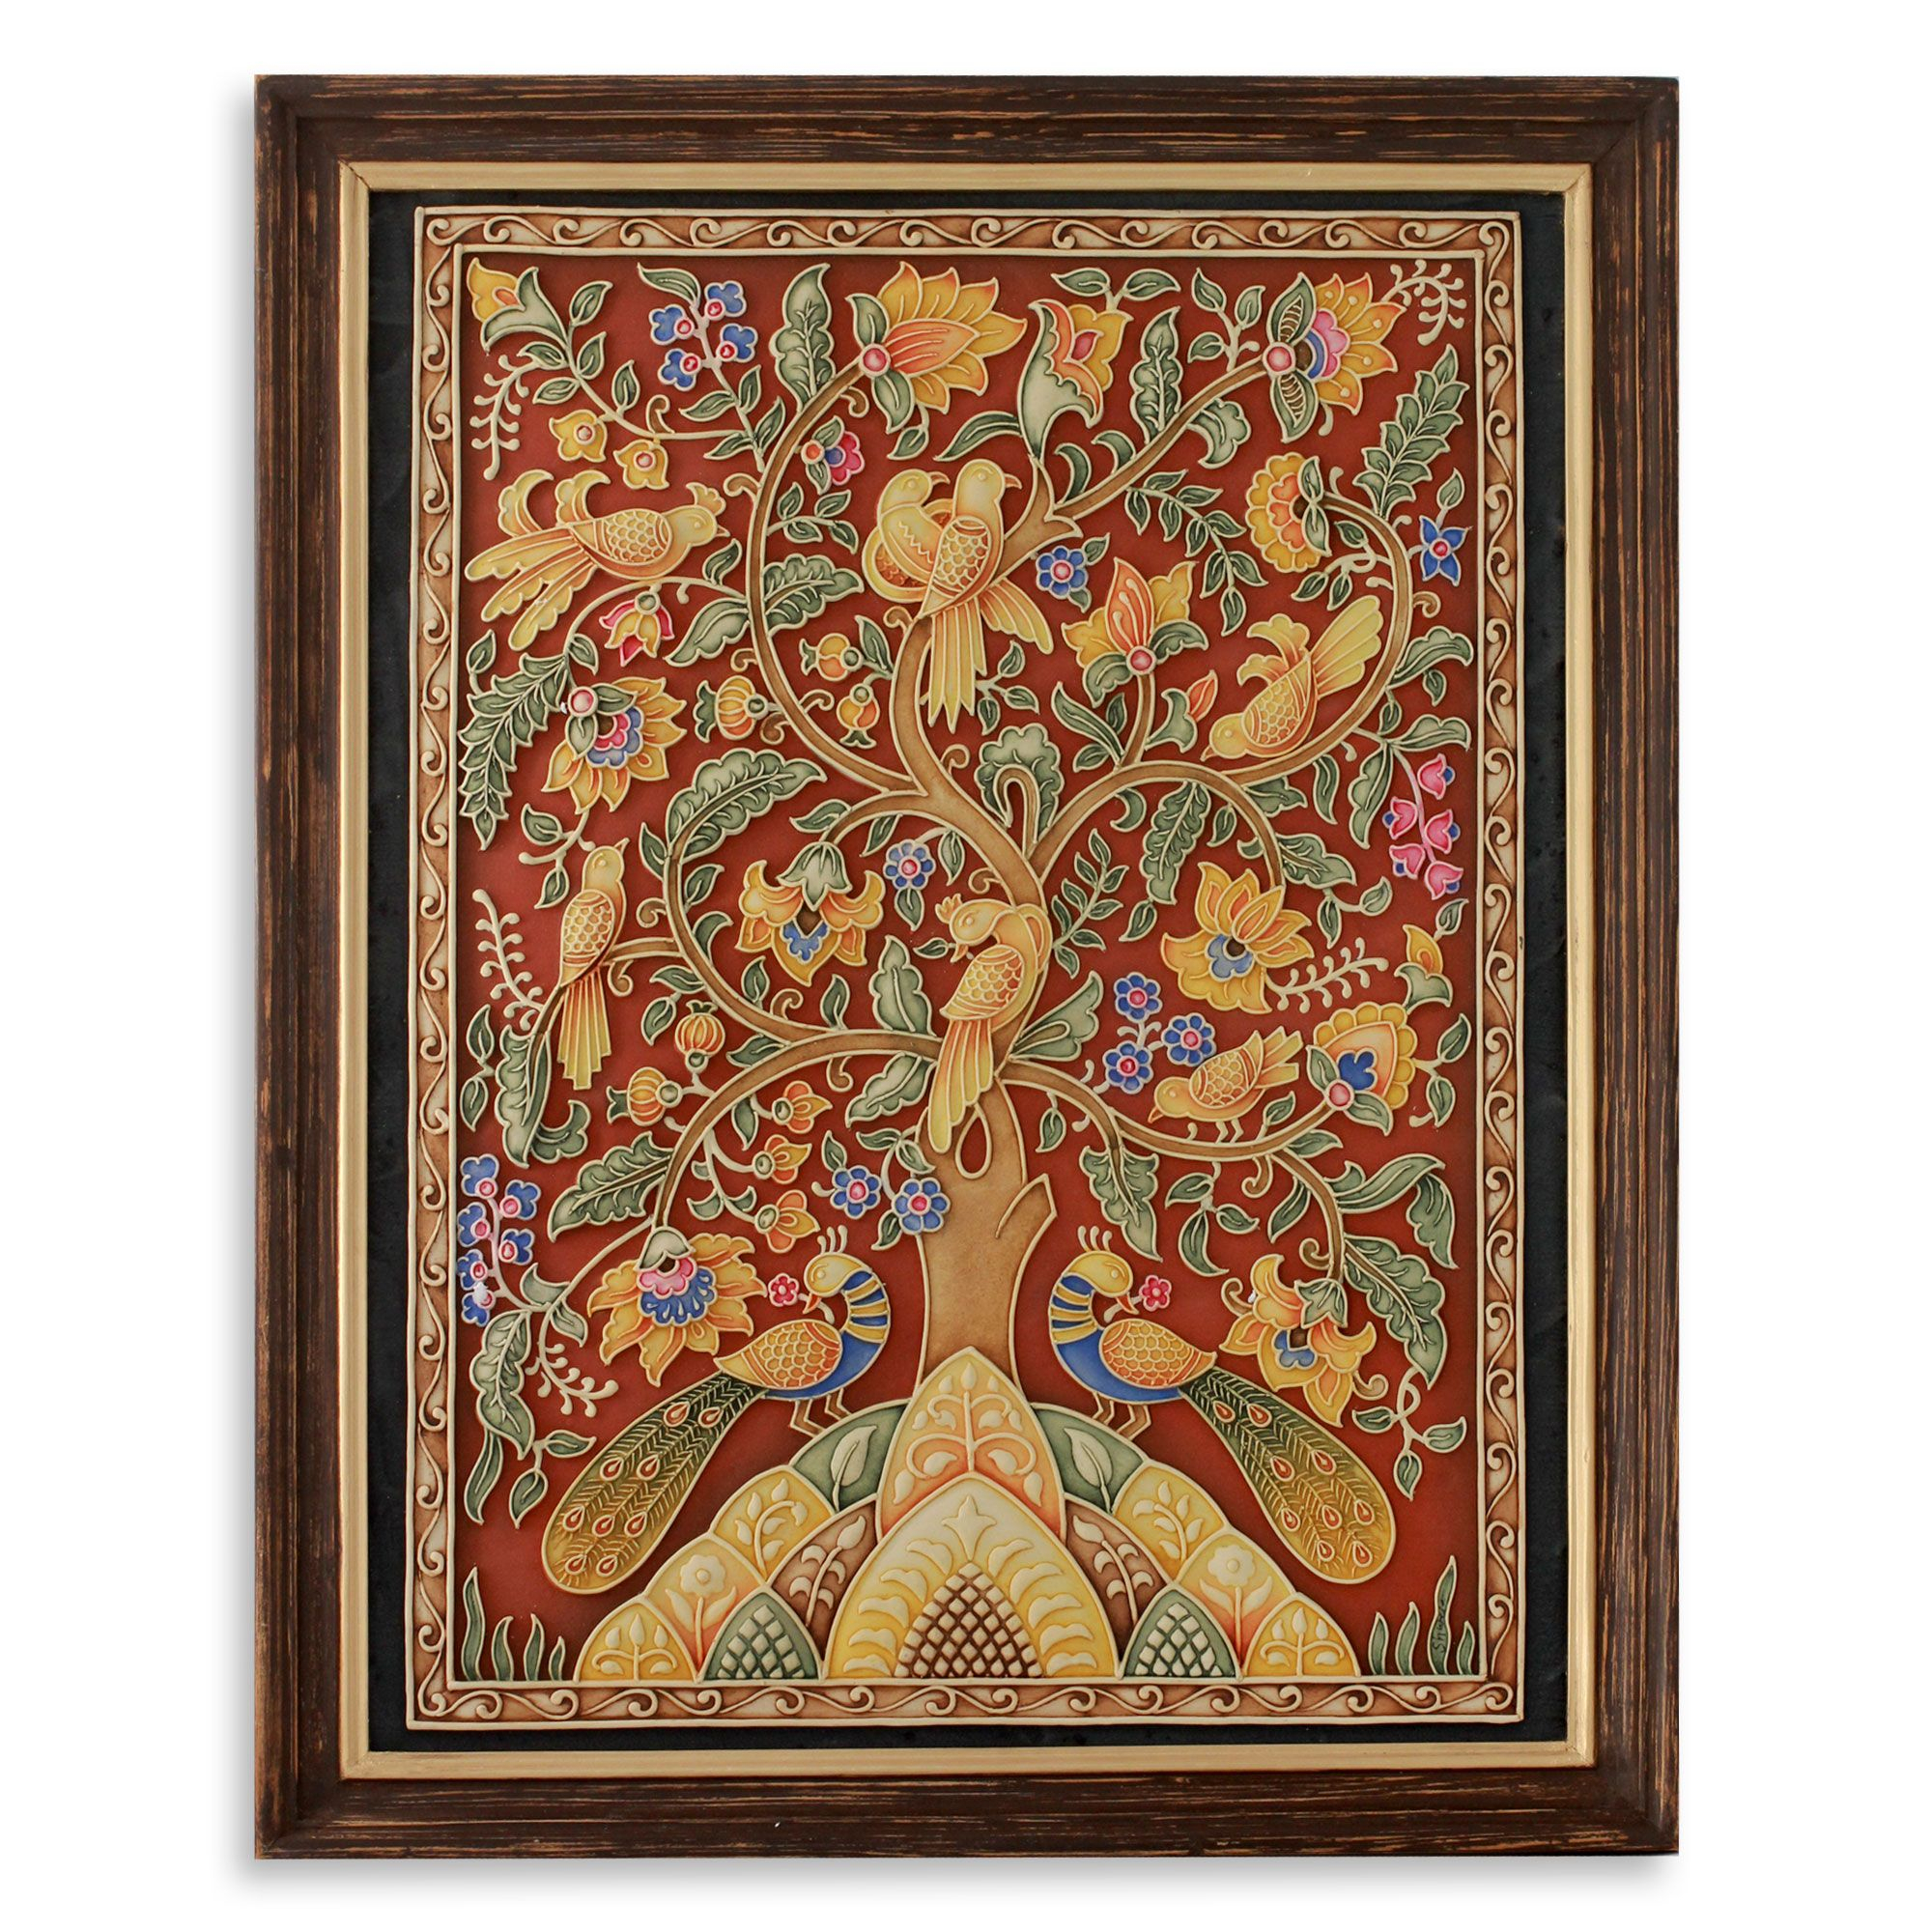 Handcrafted Framed Marble Dust Tree Of Life Relief Panel With Tree Of Life Wall Decor By Red Barrel Studio (View 20 of 30)